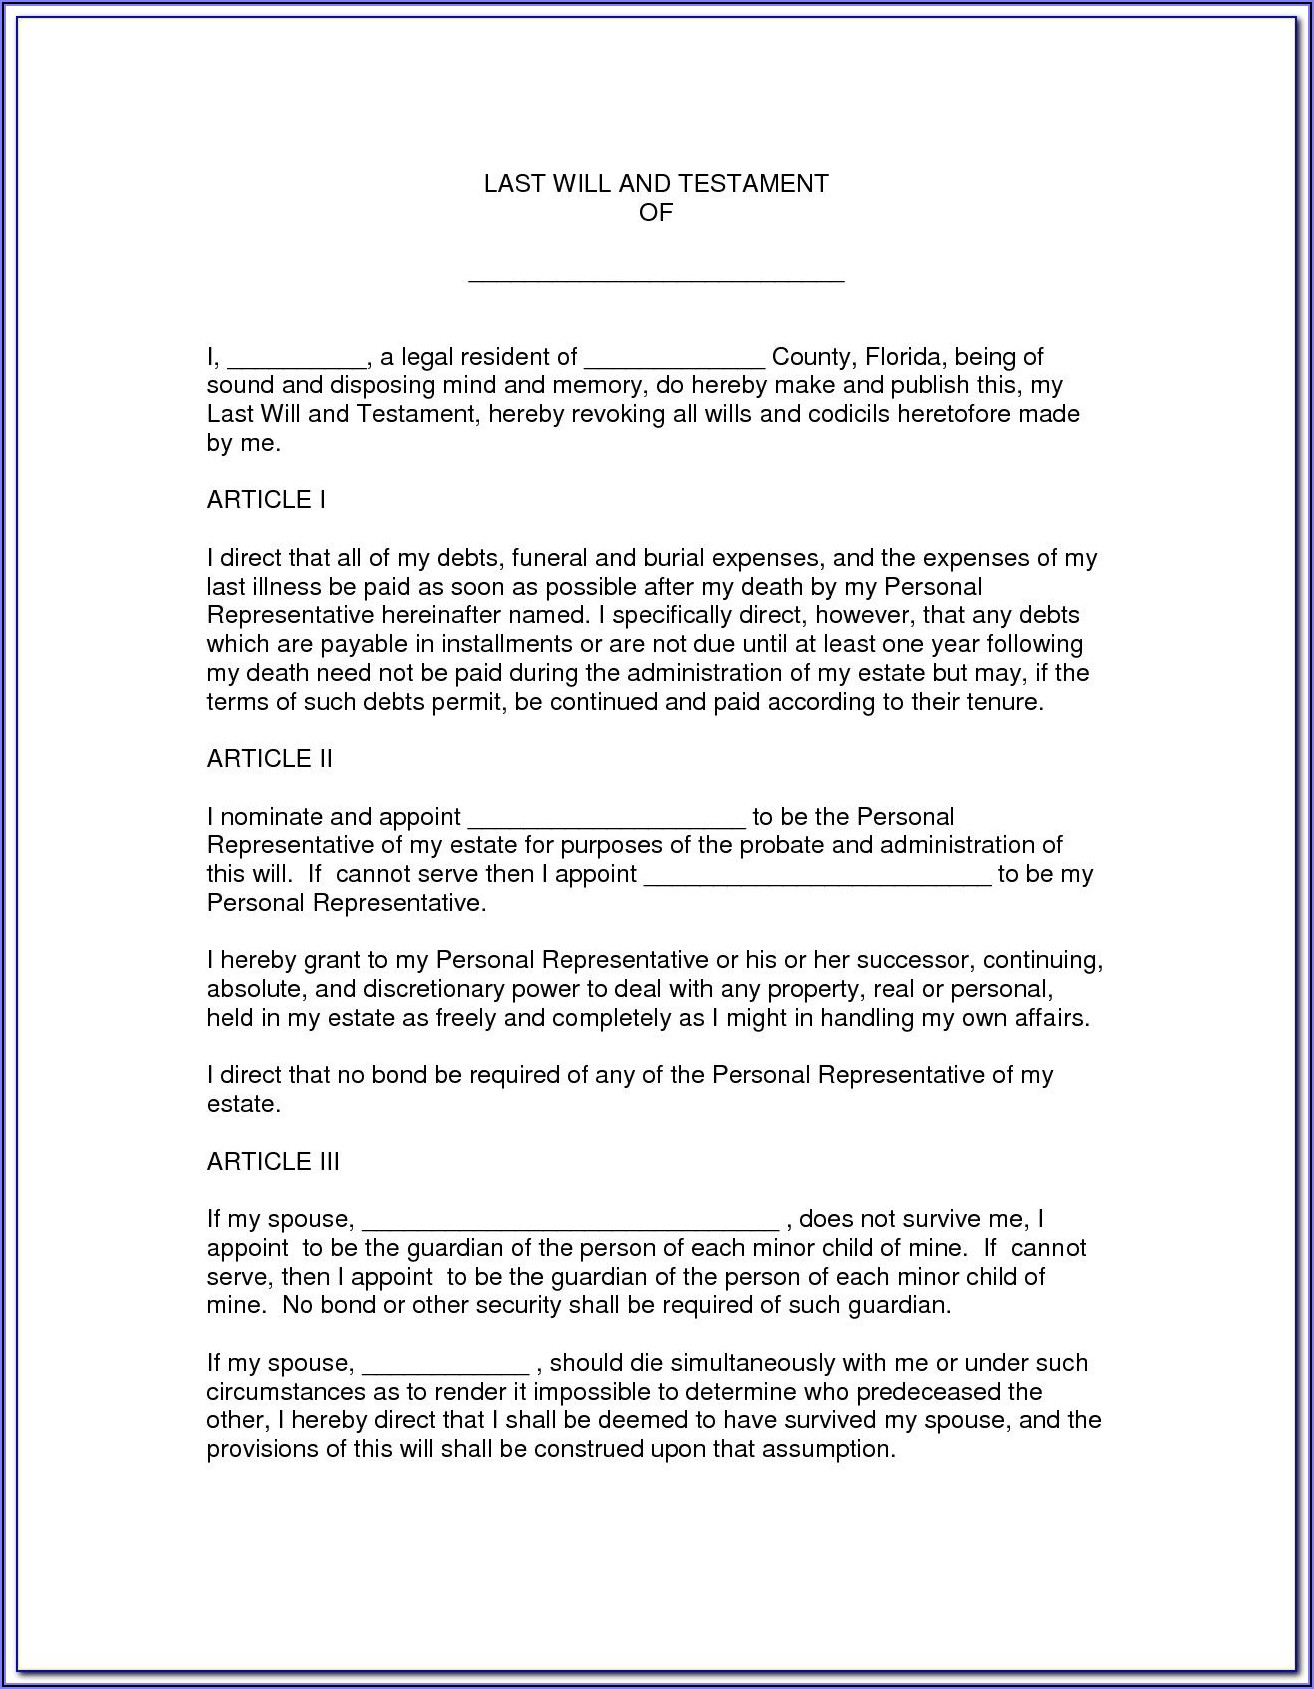 Florida Last Will And Testament Forms